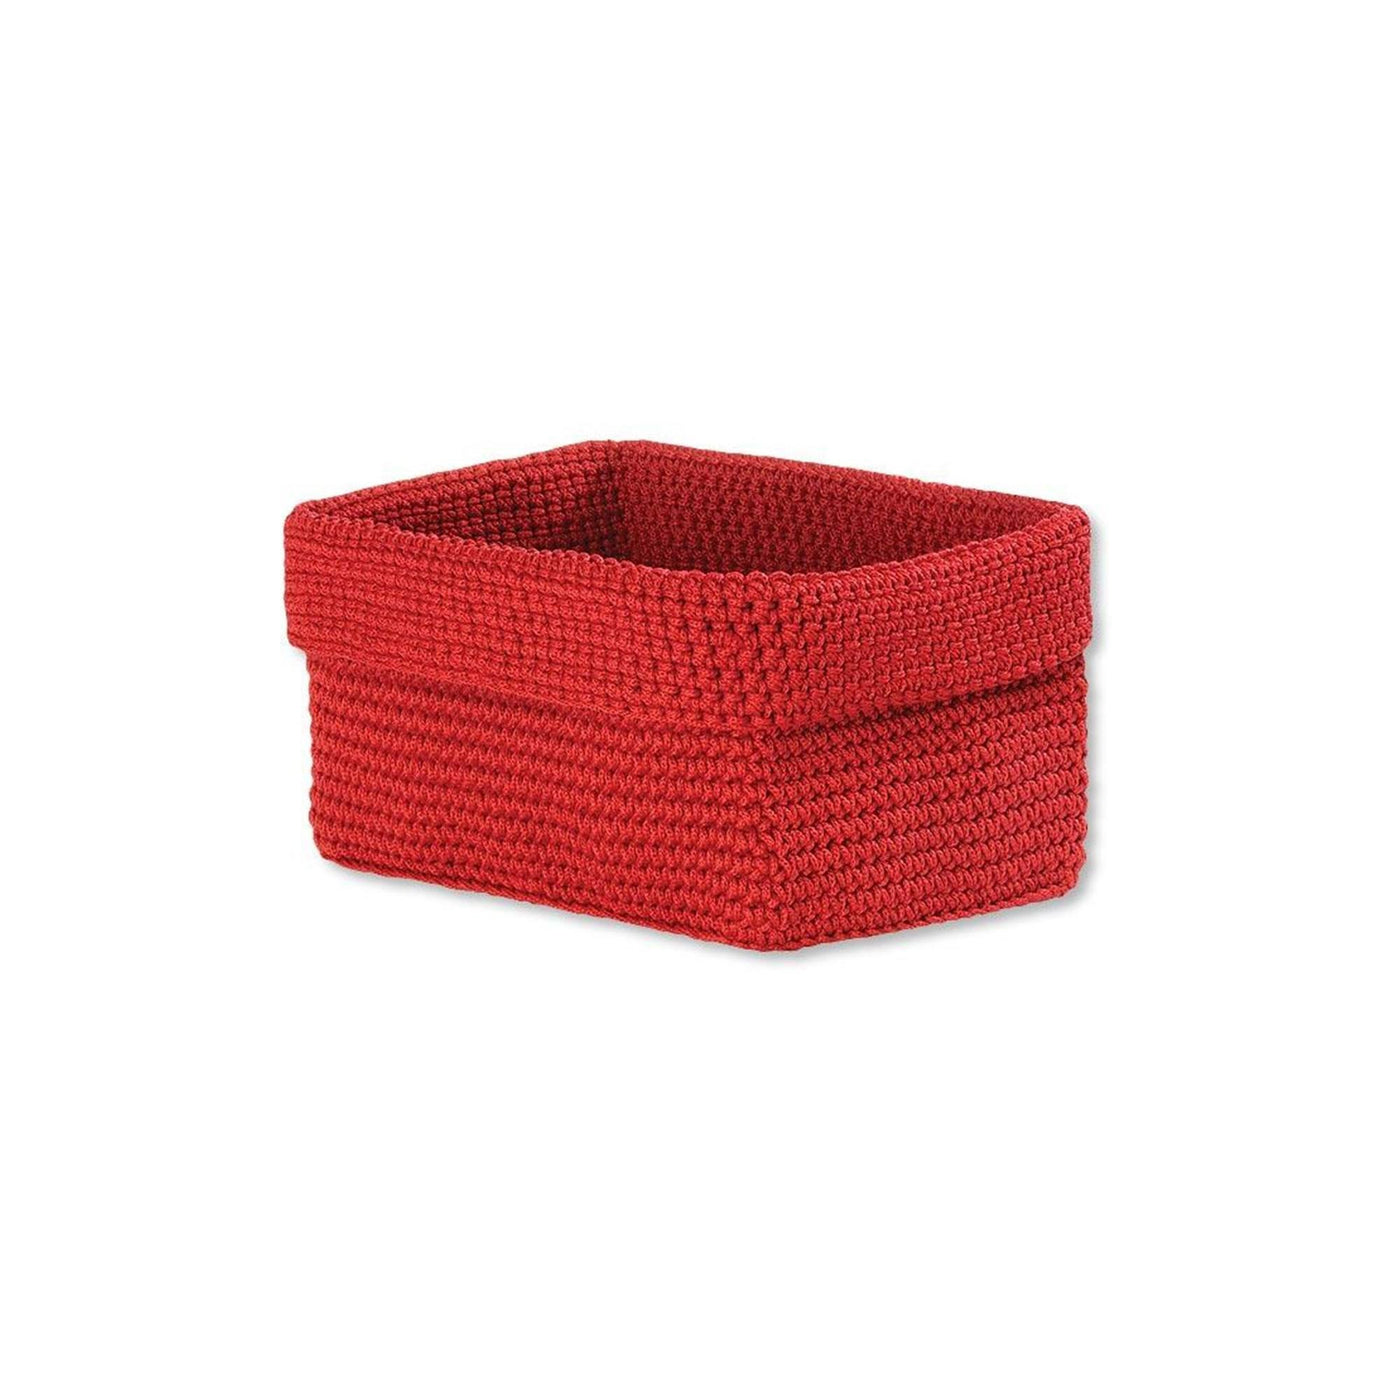 "Set of 2 Mode Crochet Rectangular  8"" x 5"" x 6"" Basket from Heritage Lace - Expressions of Home"